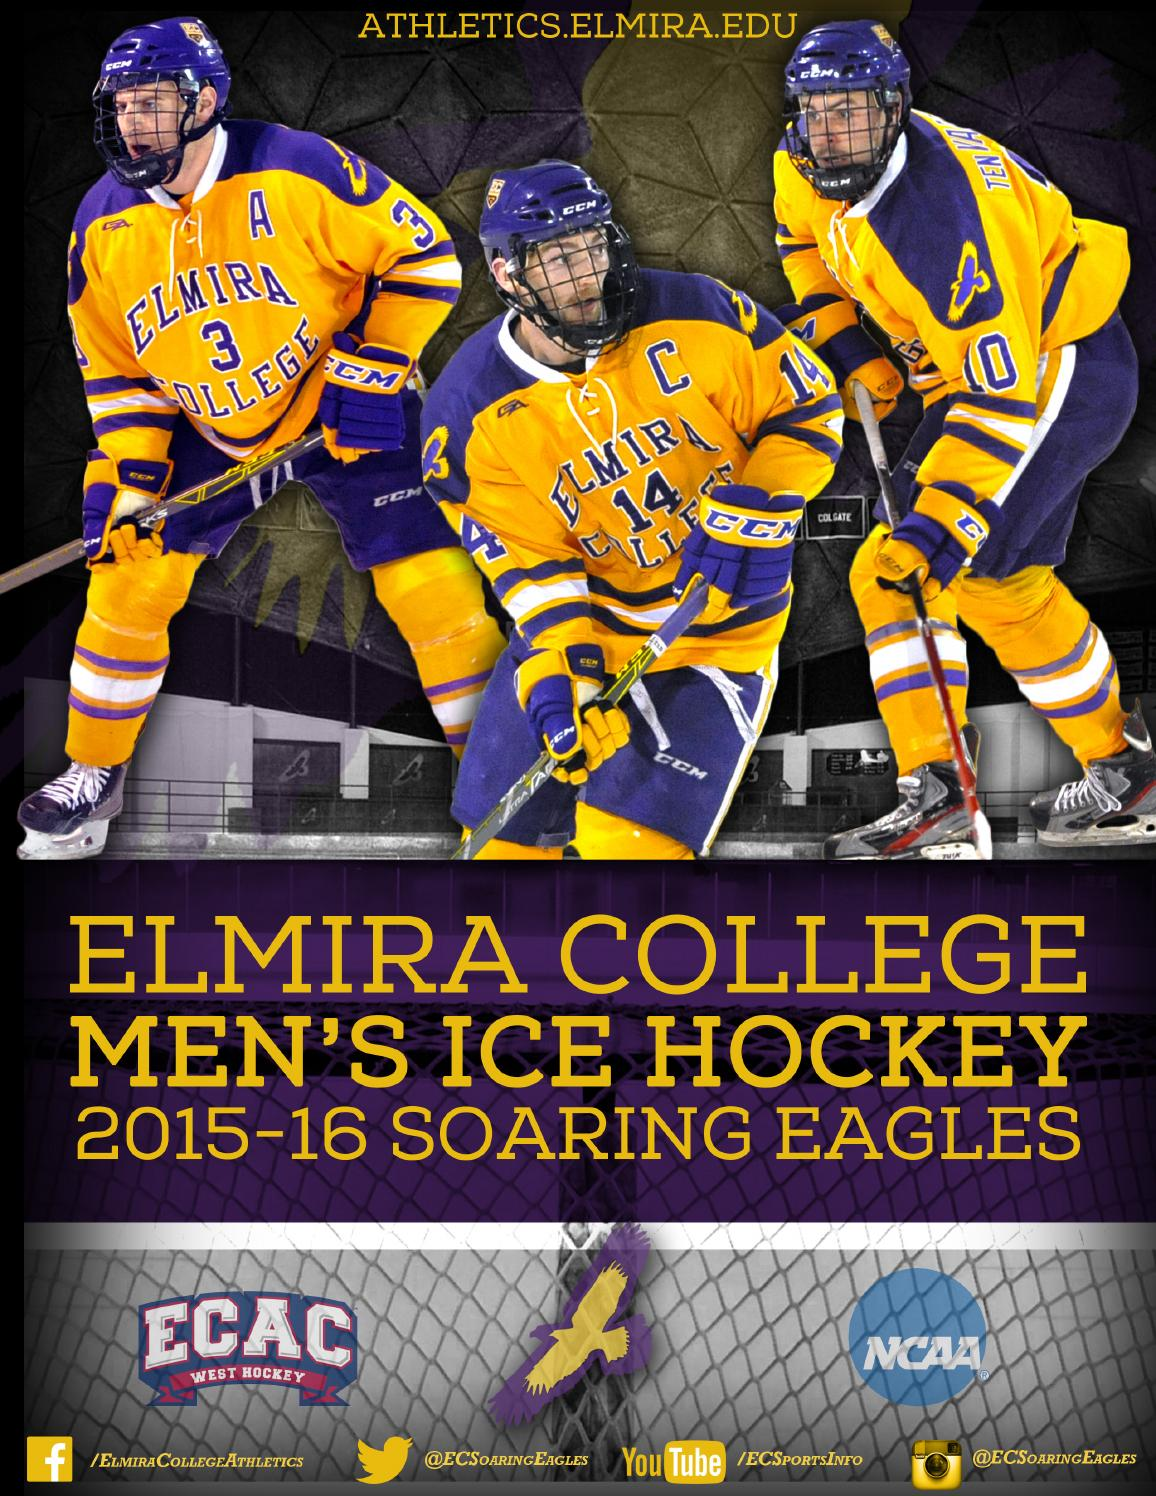 8701344a110 2015-16 Elmira College Men's Ice Hockey Media Guide by Elmira ...